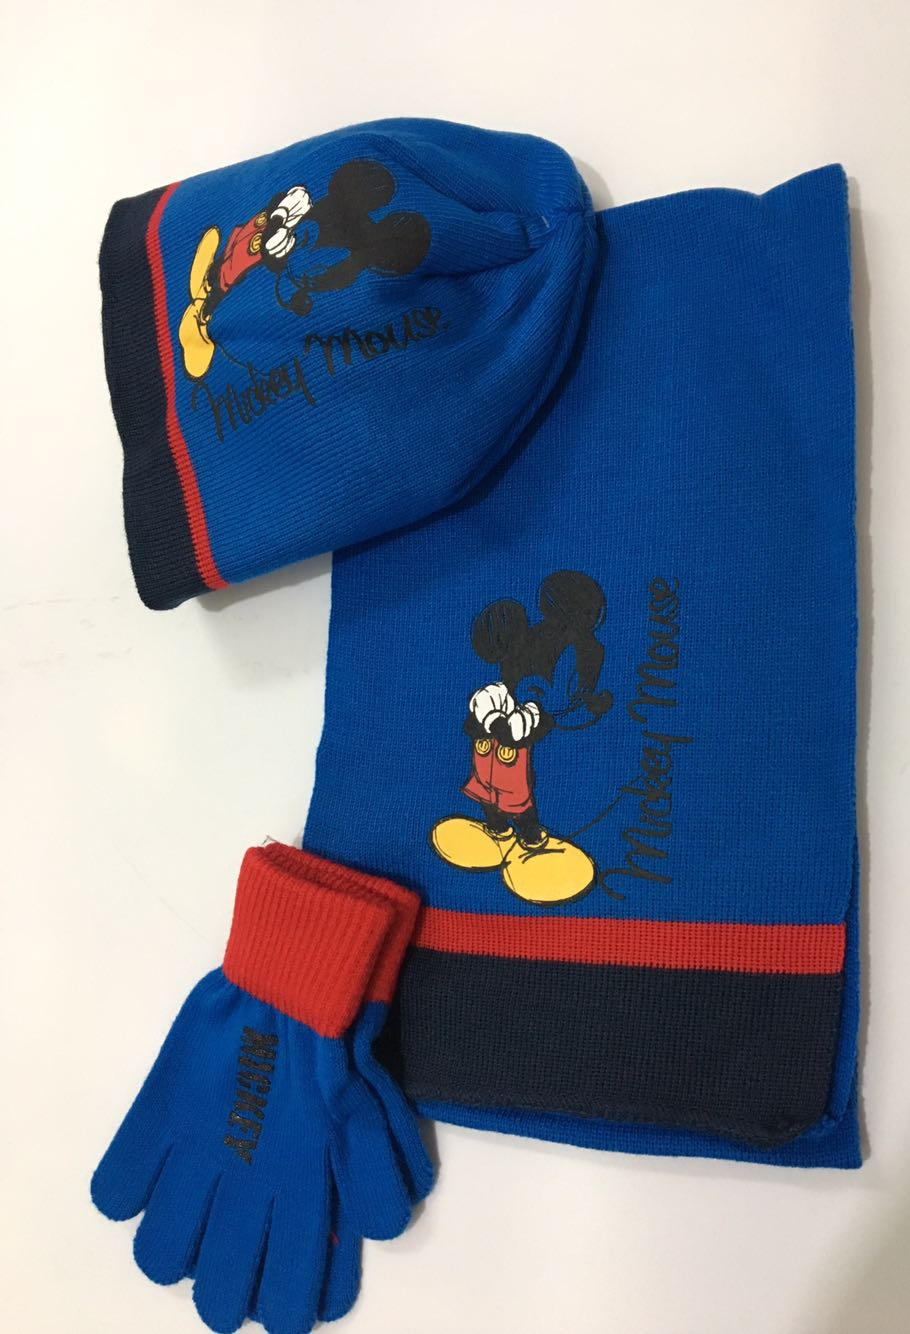 1set Cartoon Mickey Cute Knit Beanie Hat Children Christmas Winter Knitted Scarf Gloves Hat Set Party Kids Gifts 2-8Y